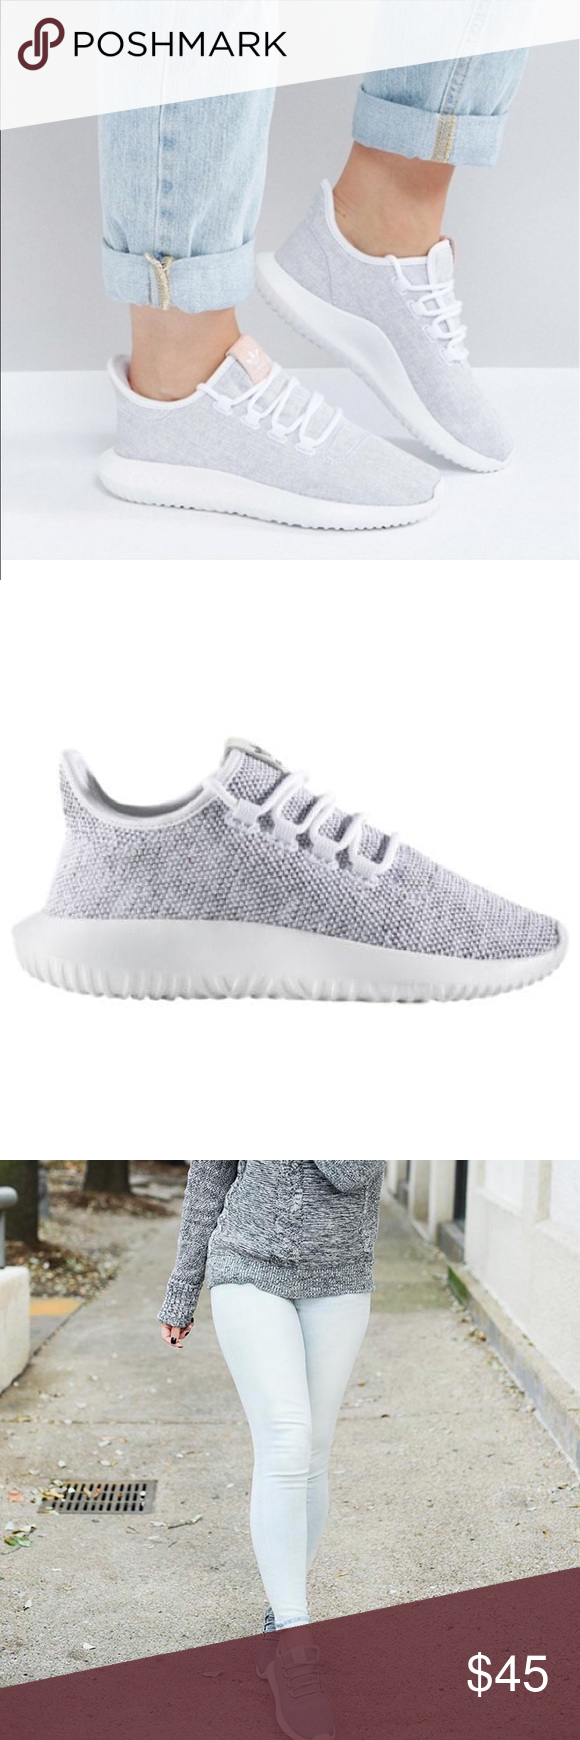 Adidas tubular shadow grey 38 Kid's 6 = women 7.5, I normally wear 7.5 in sneakers and they fit perfectly. Worn only twice in almost perfect condition.